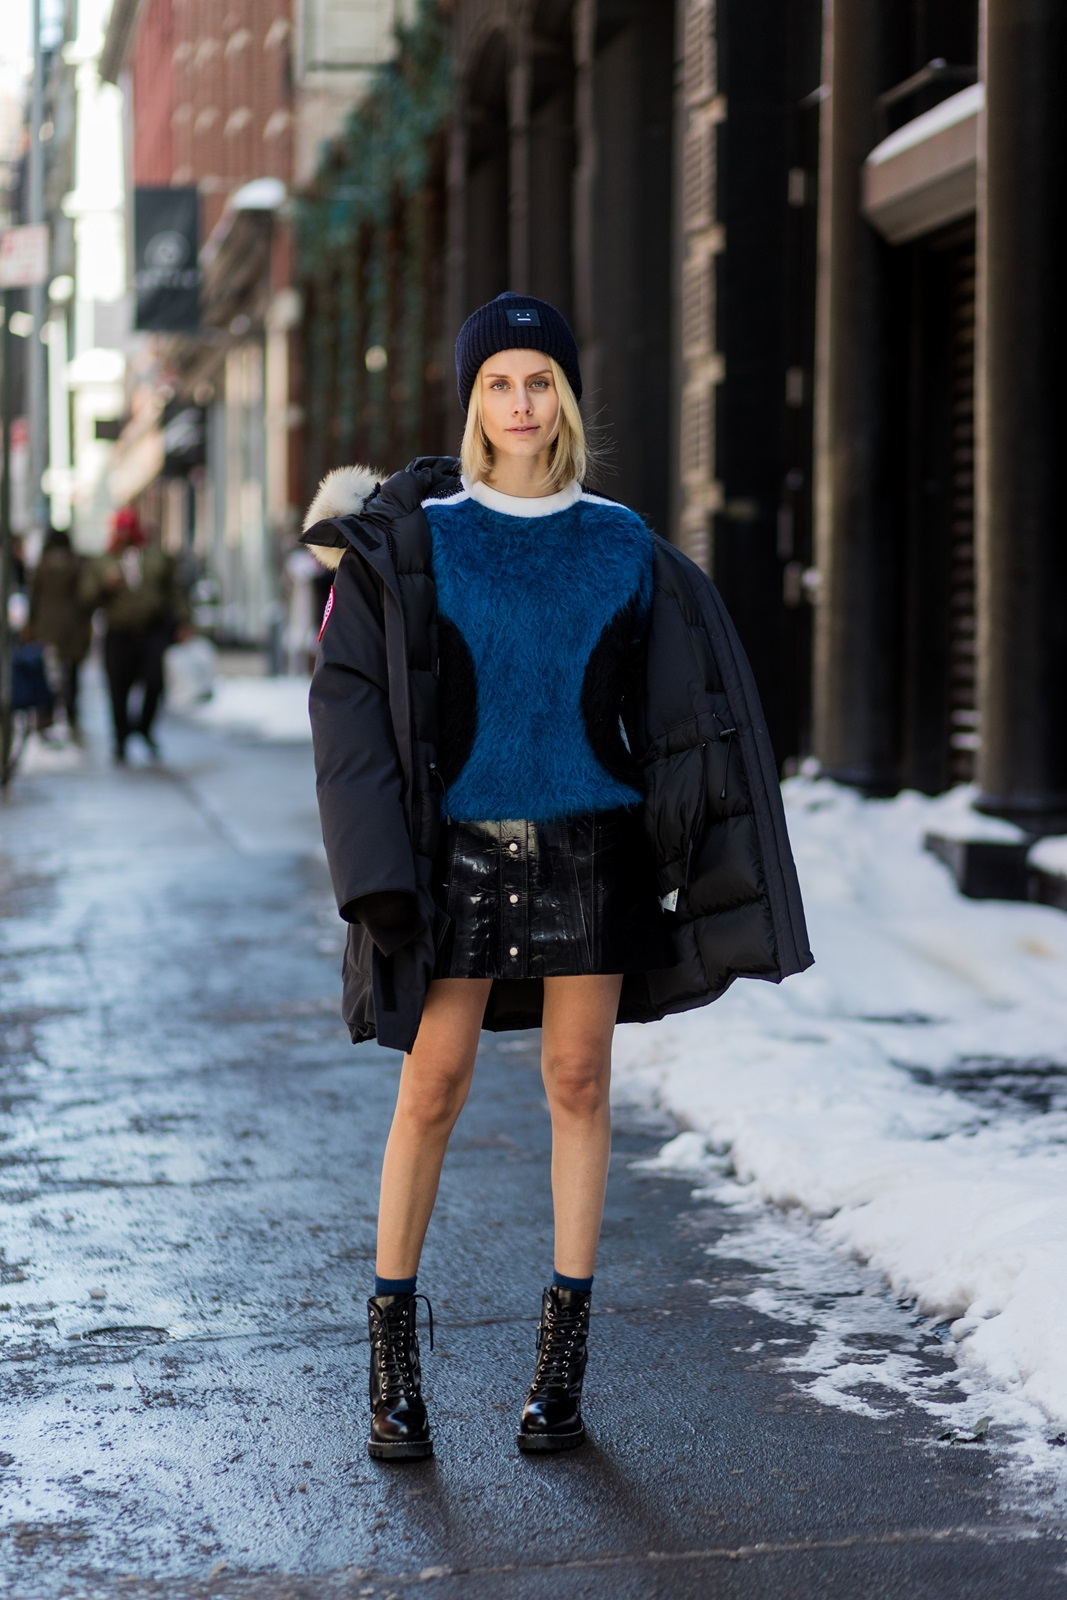 NEW YORK, NY - FEBRUARY 10: Lisa Hahnbueck wearing Canada Goose Resolute Parka, Louis Vuitton RTW Mohair Knit, Naplack And Leather Miniskirt, Louis Vuitton STAR TRAIL ANKLE BOOT, ACNE PANSY BEANIE on February 10, 2017 in New York City. (Photo by Christian Vierig/Getty Images) *** Local Caption *** Lisa Hahnbueck